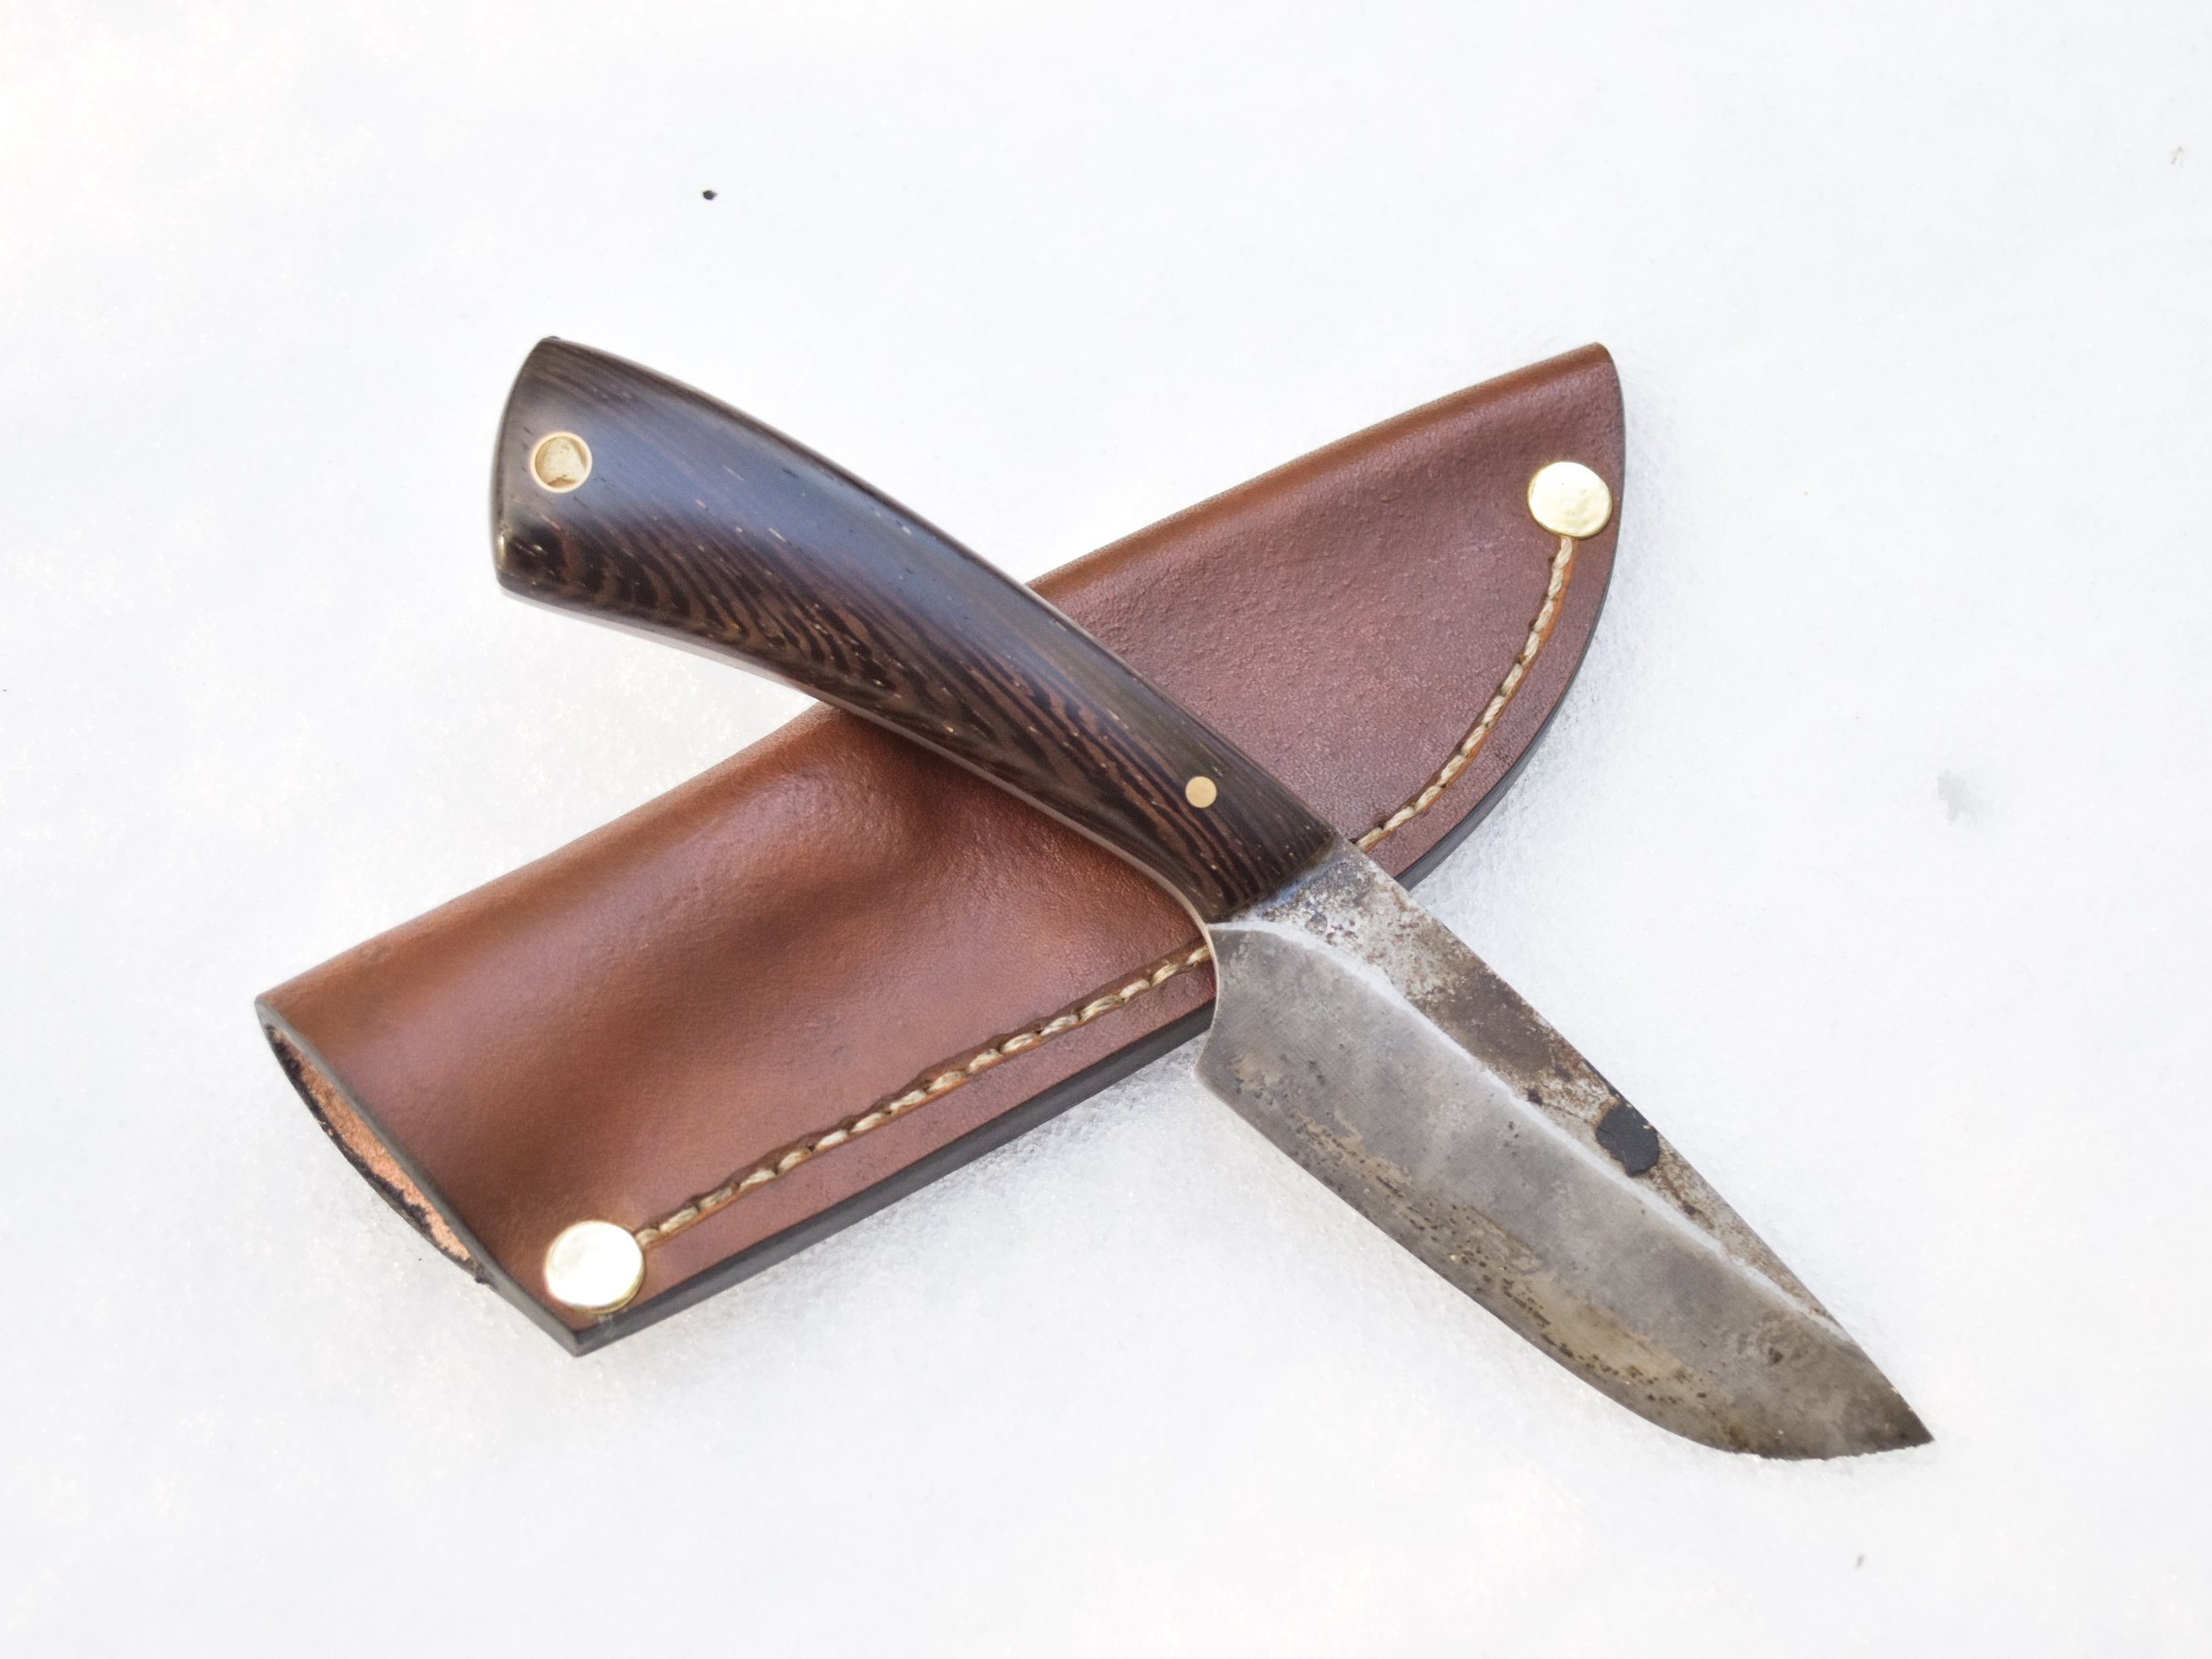 EVERETT NOEL KNIVES